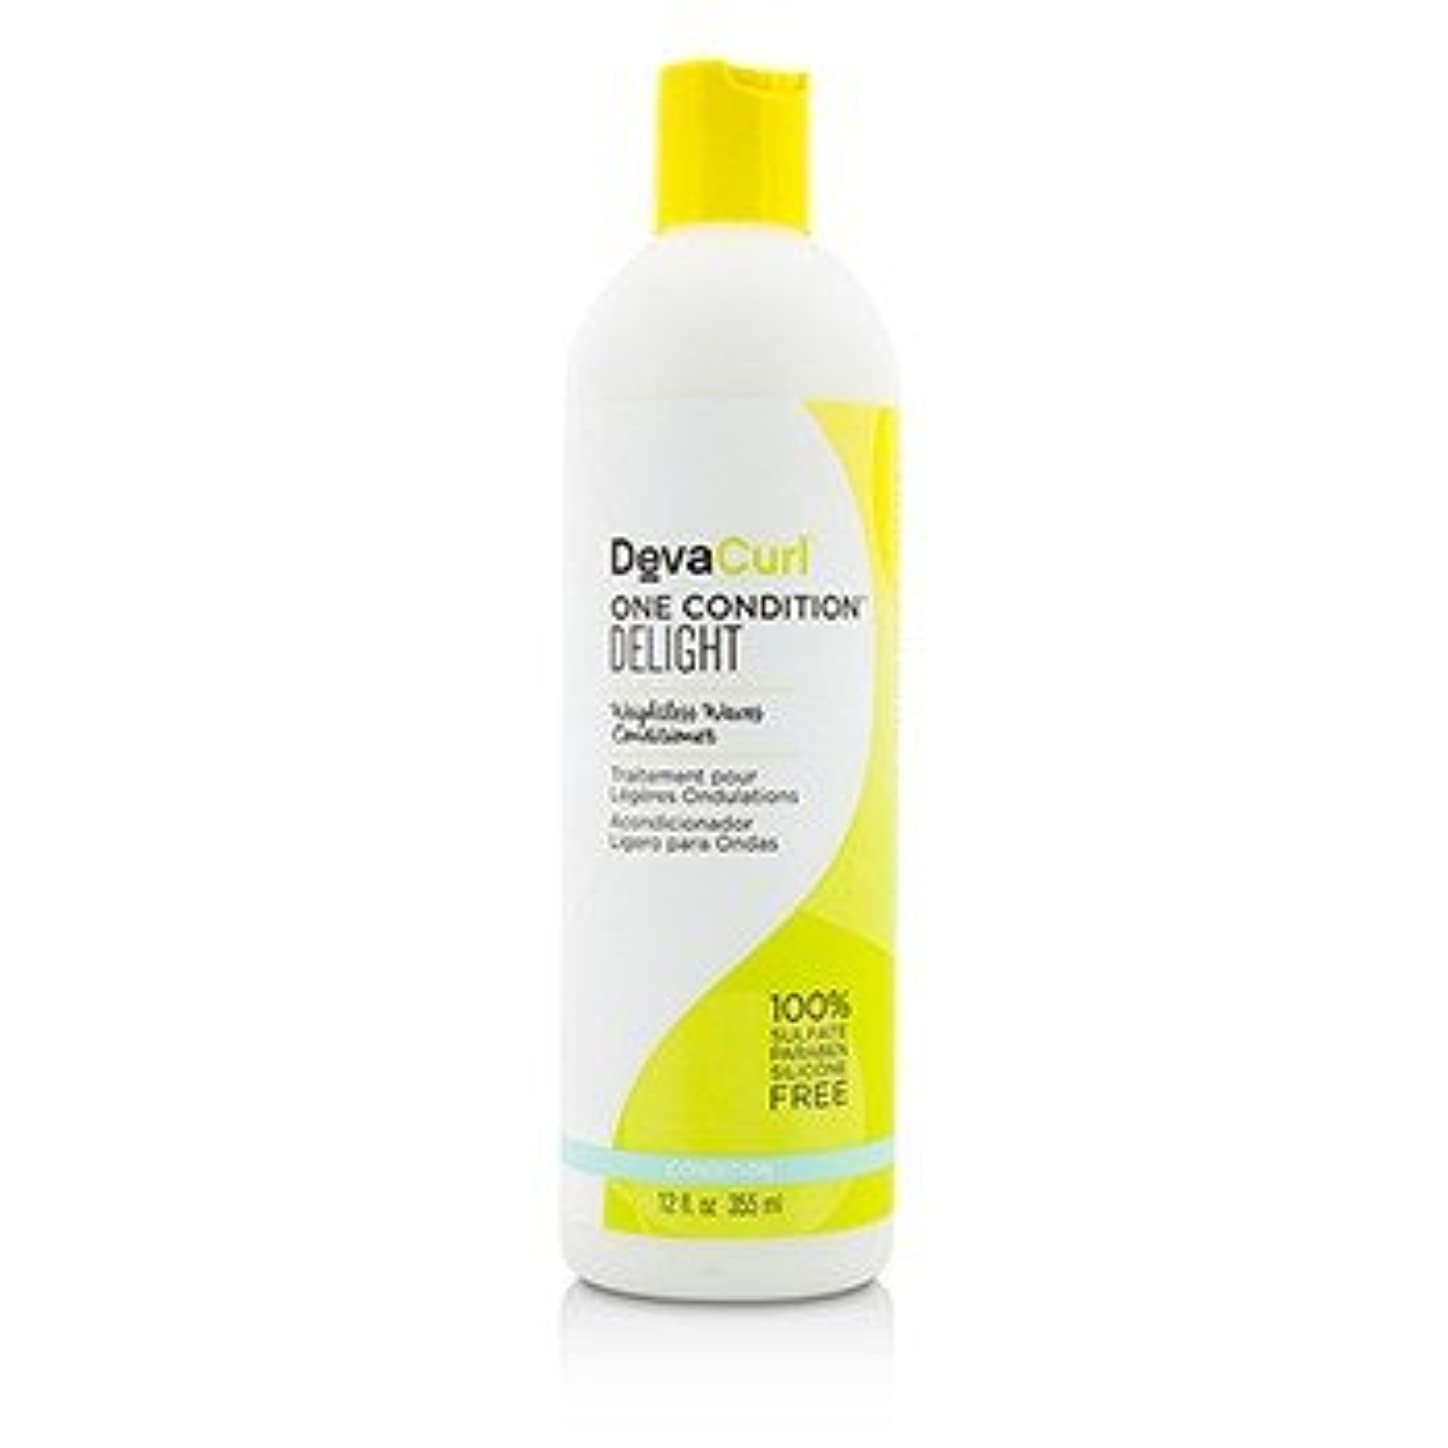 出発する付き添い人動脈[DevaCurl] One Condition Delight (Weightless Waves Conditioner - For Wavy Hair) 355ml/12oz